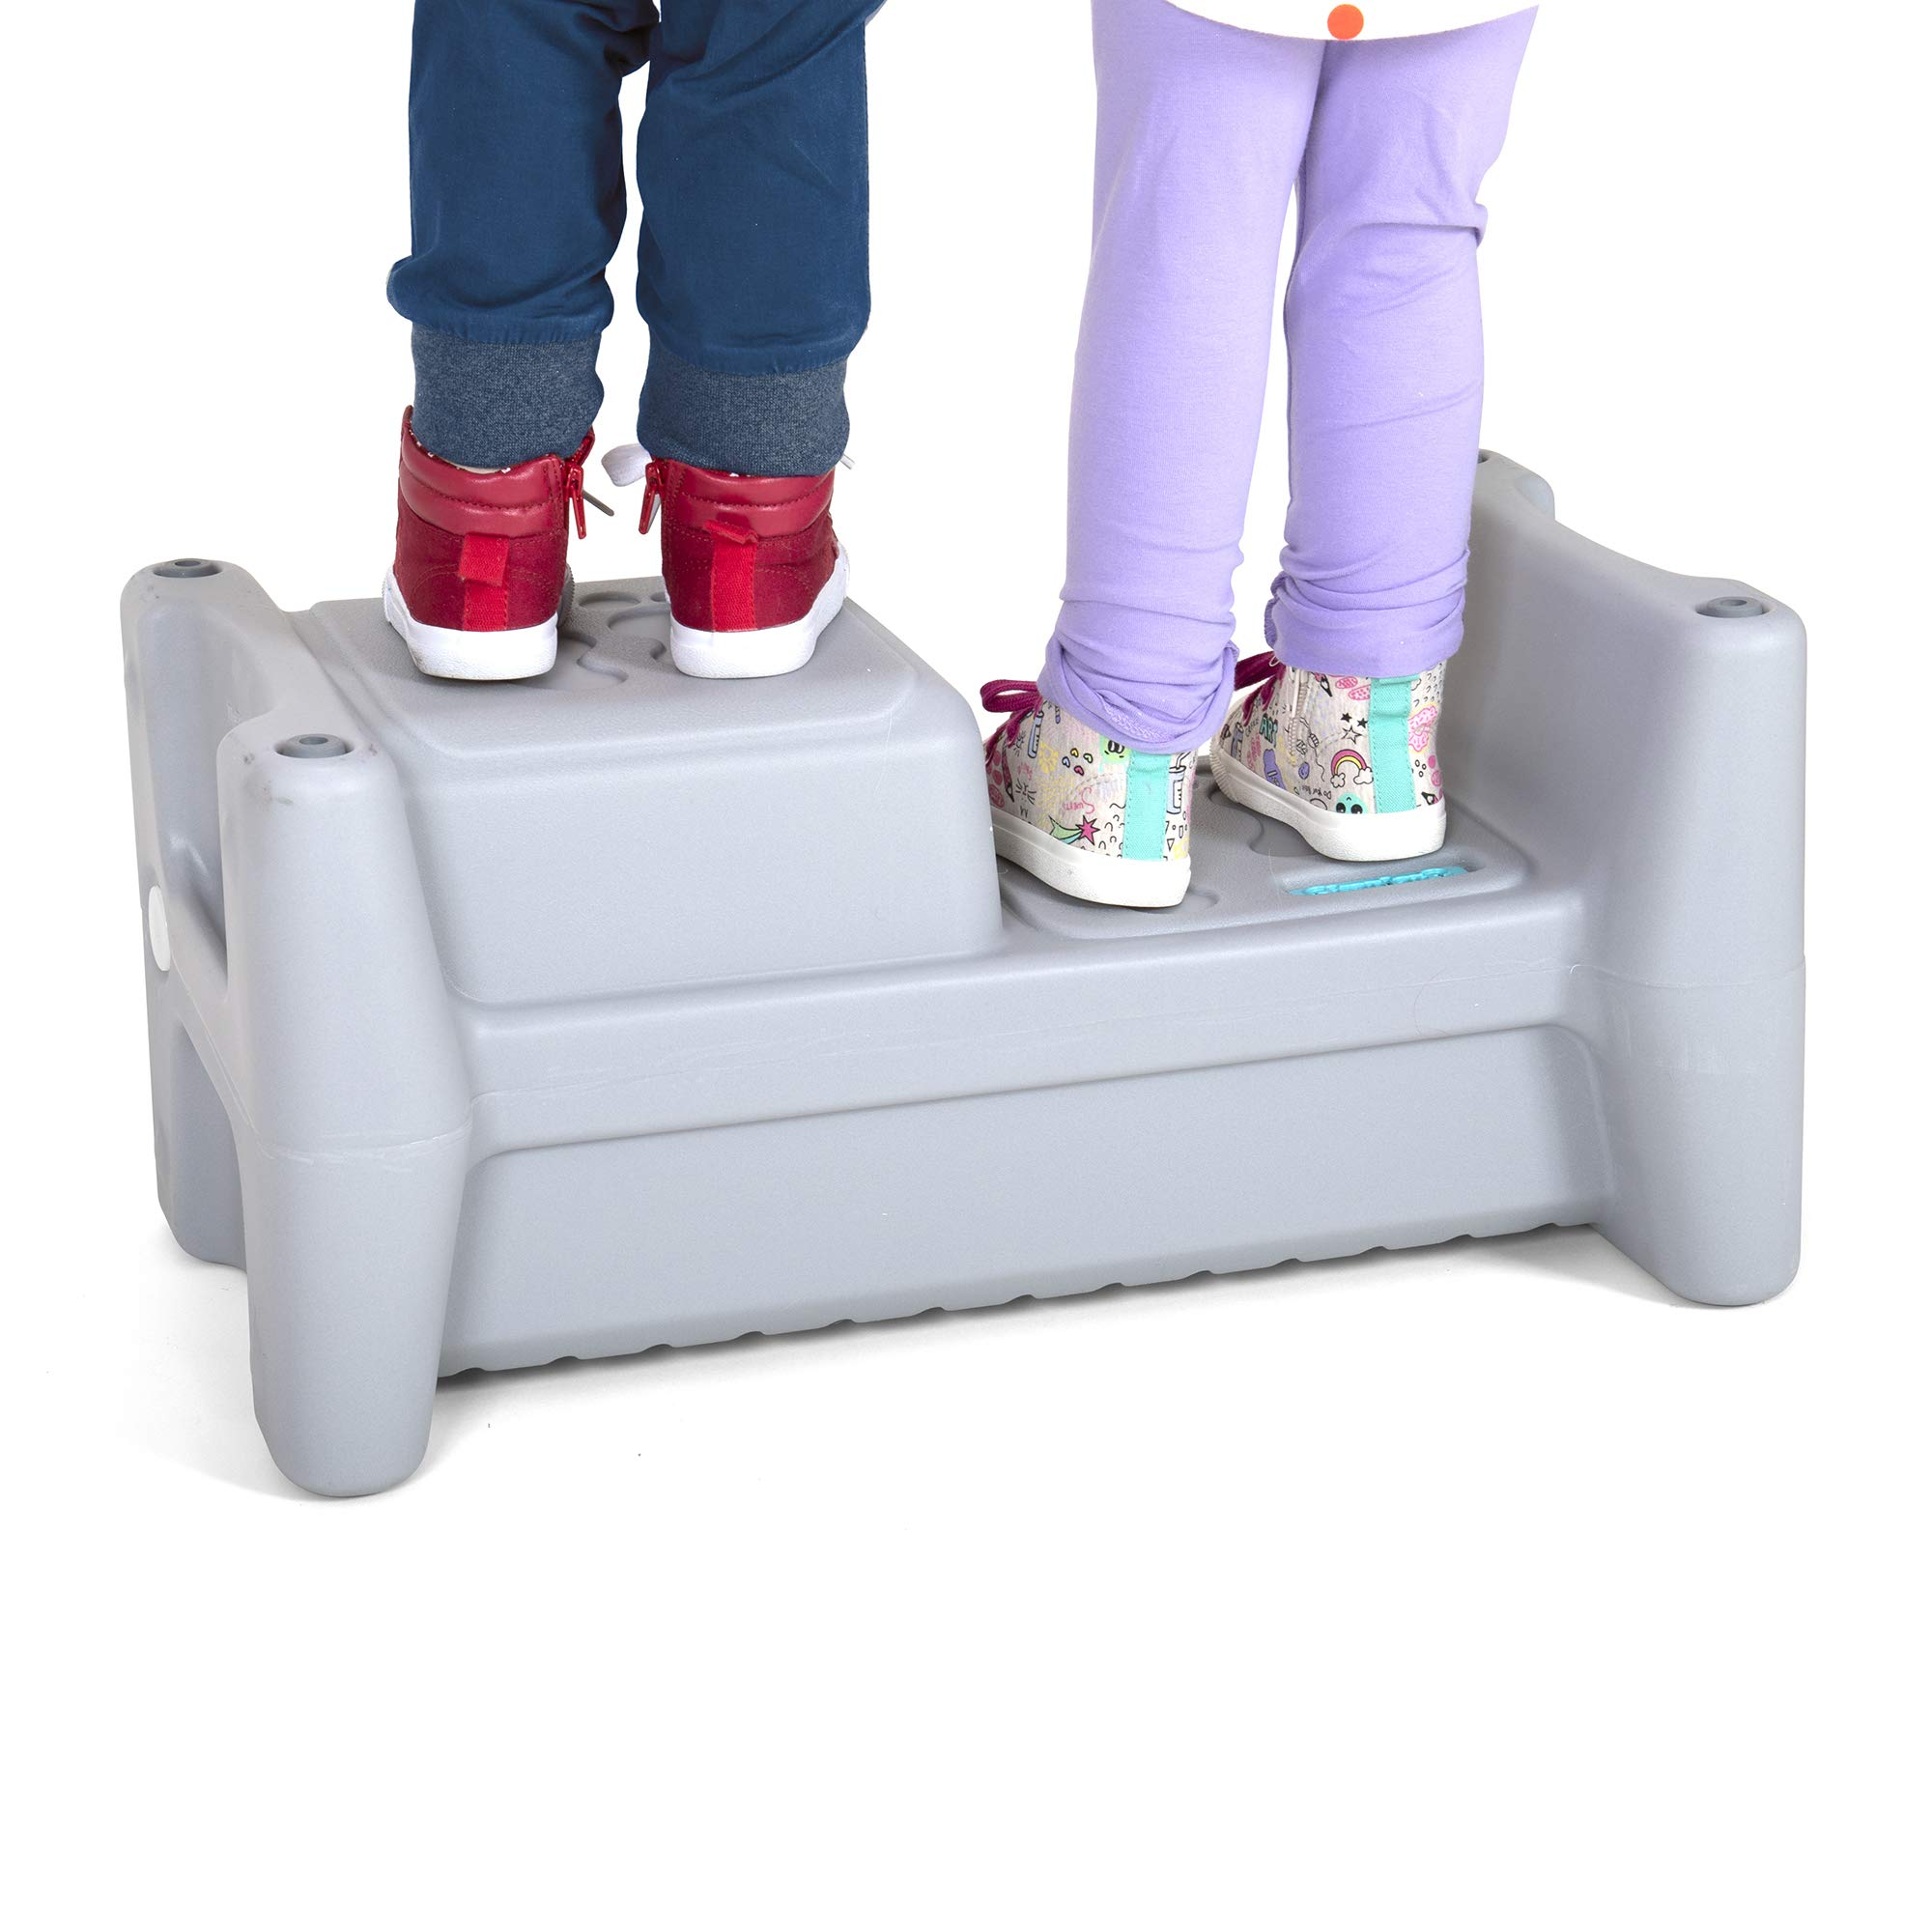 Simplay3 Sibling Step Stool - 2 Sided Extra Wide Sit and Stand Multiple Height Lightweight Anti Slip Step Stool for Children